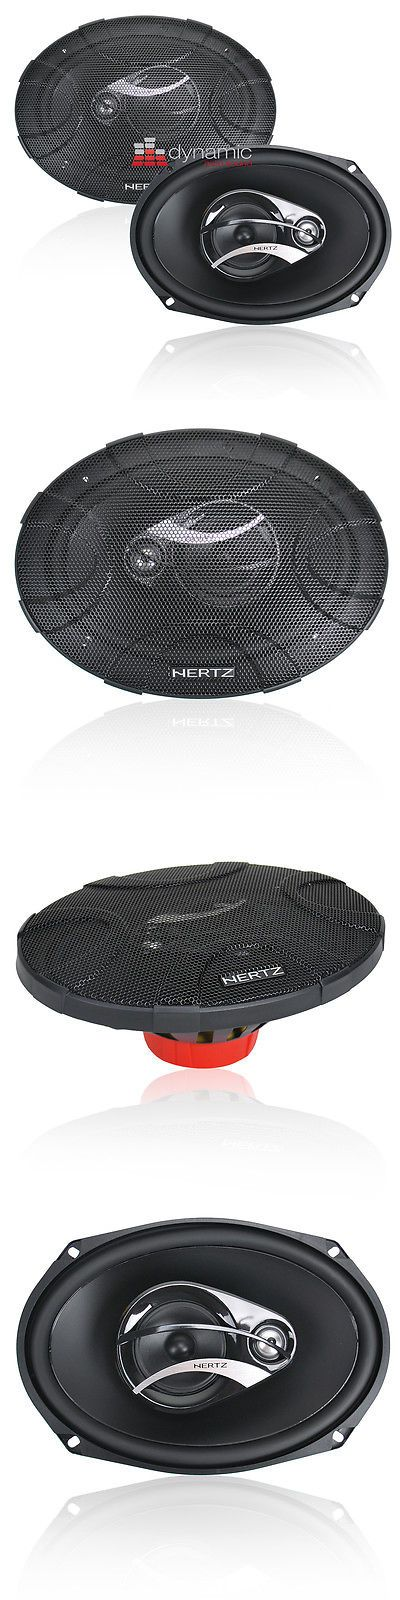 Car Speakers and Speaker Systems: Hertz Dcx-690.3 Dieci Series 6X9 3-Way Car Audio Coaxial Speakers 180W New -> BUY IT NOW ONLY: $119.95 on eBay!